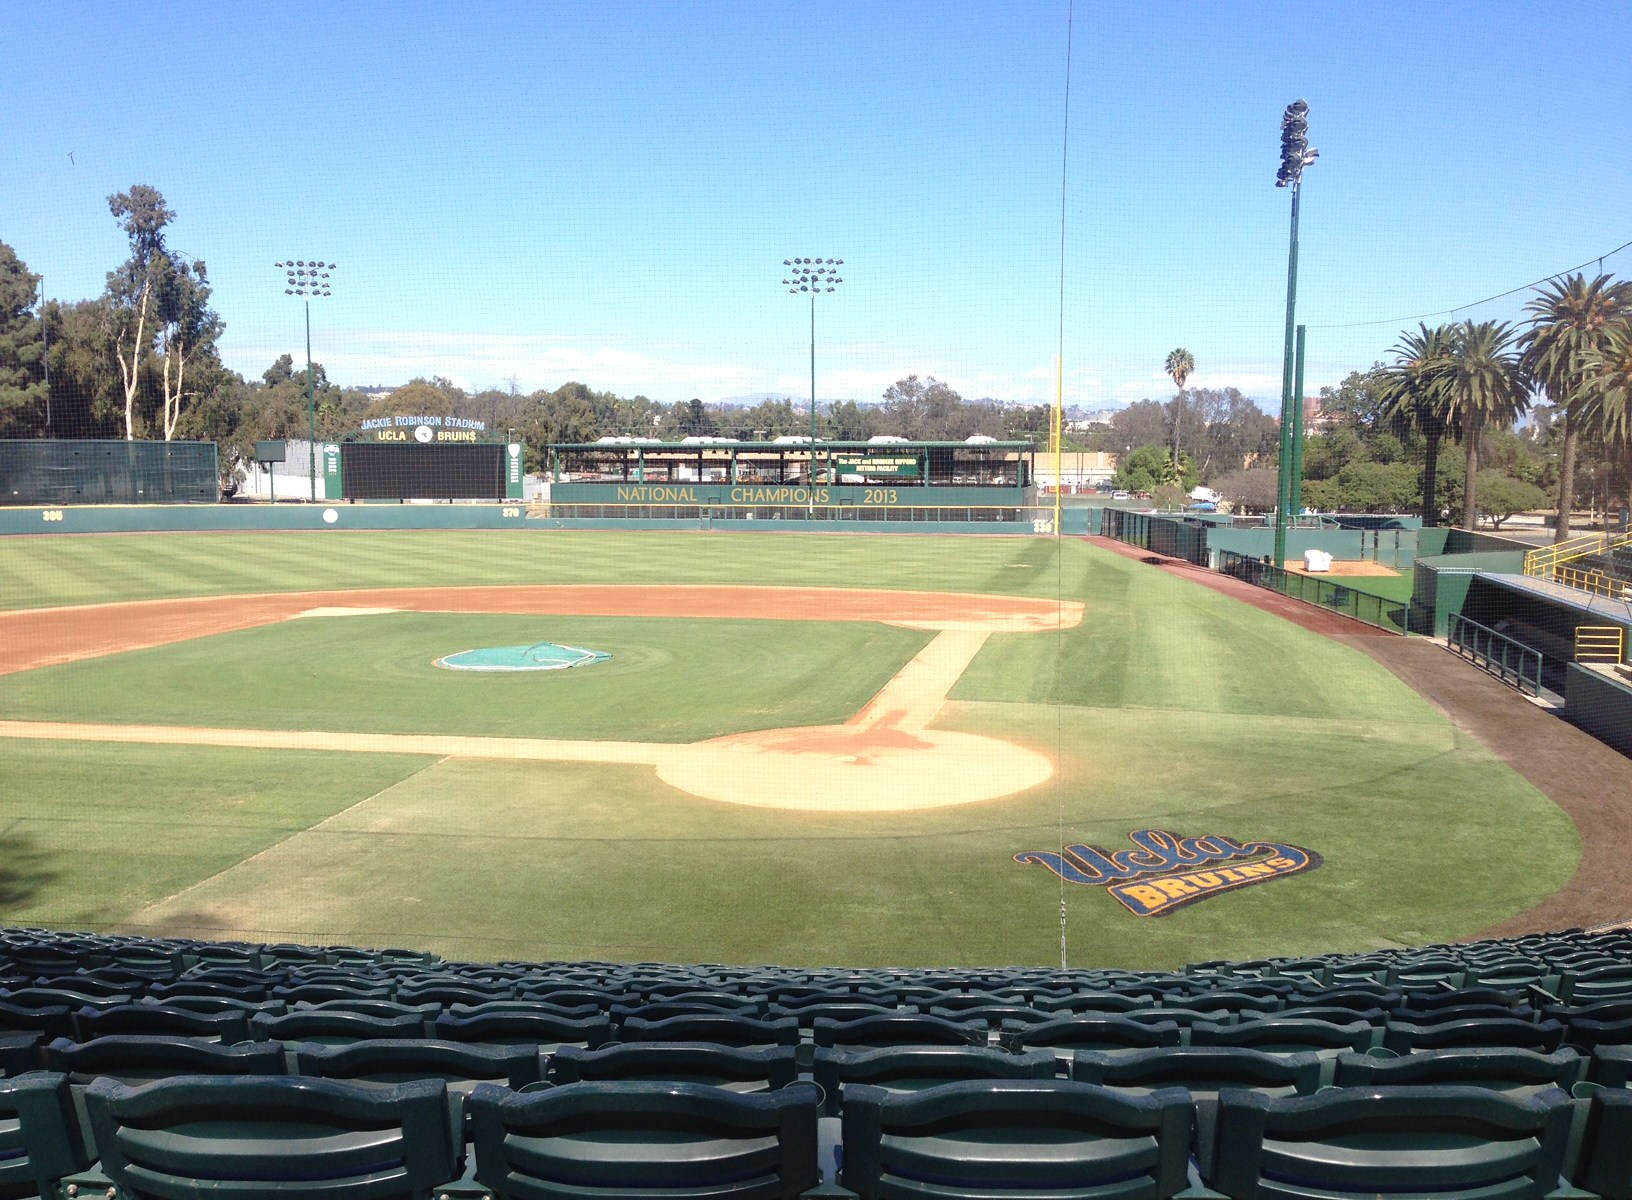 UCLA baseball field